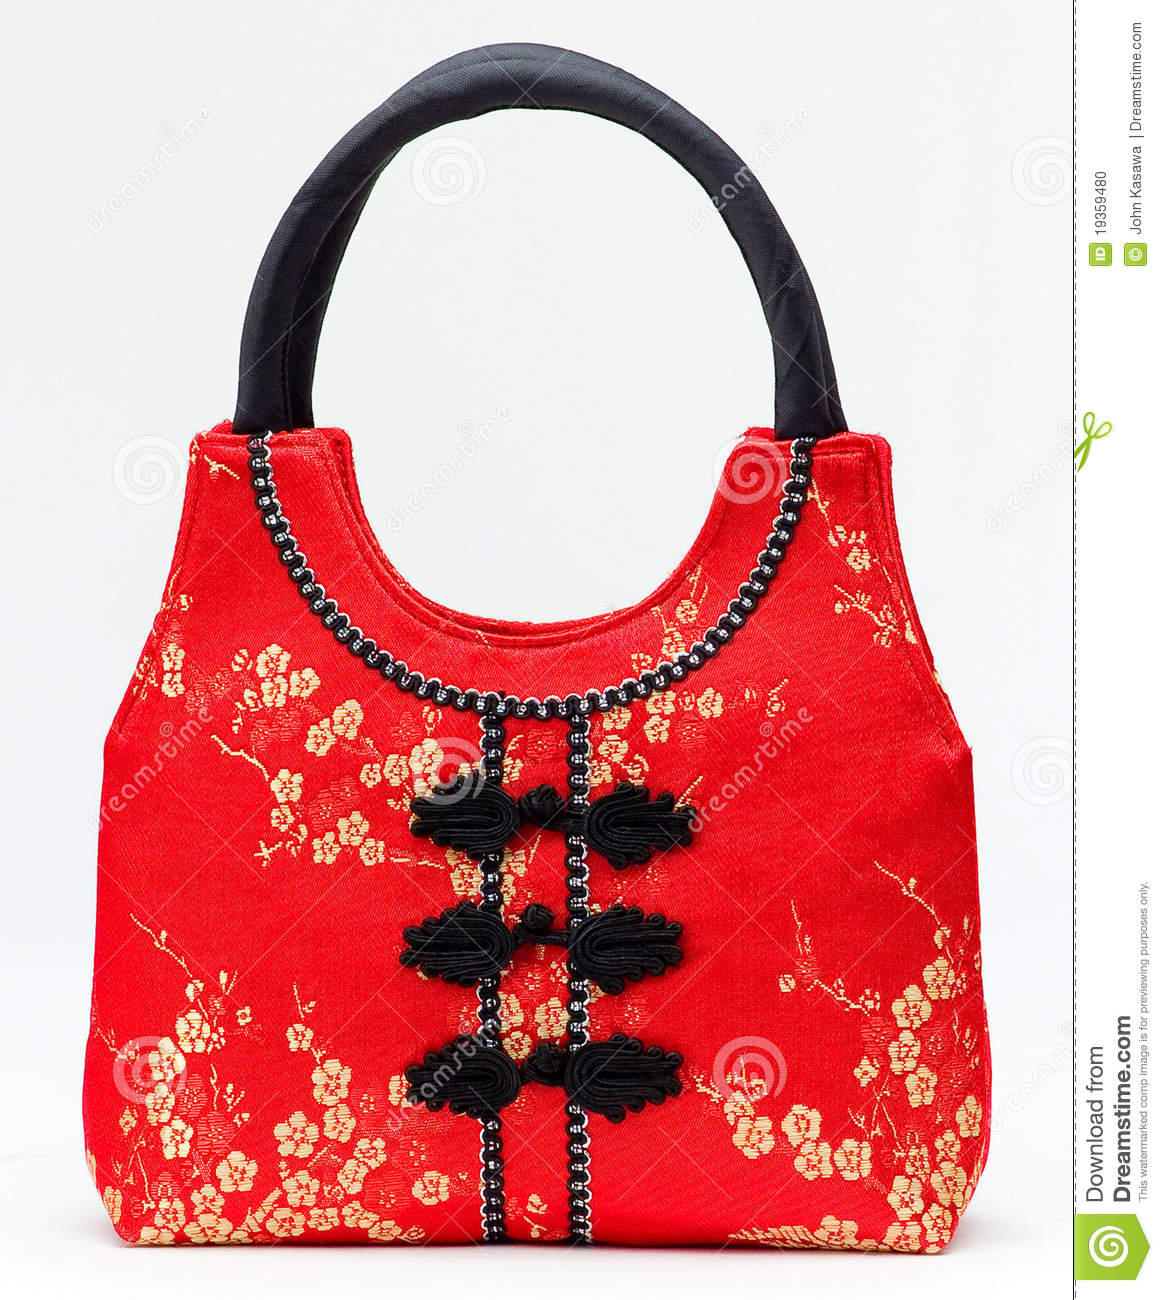 Chinese Style Handbag In Red Color Stock Photo